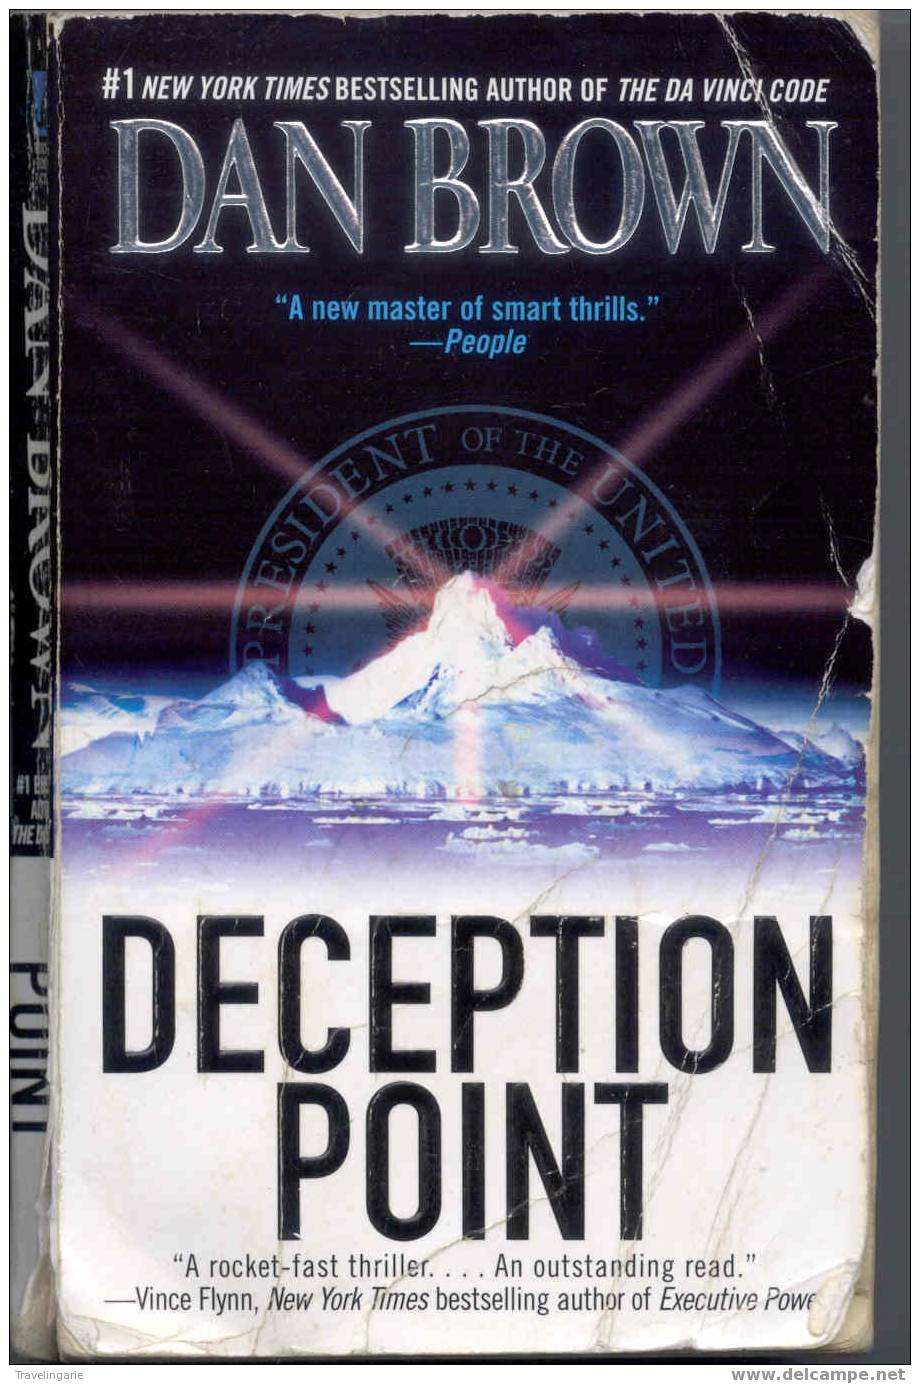 deception point by dan brown essay Two of brown's novels, digital fortress (1996) and deception point (2001), deal with secret governmental organizations yet it was brown's novel the da vinci code (2003), a book that combines all three of these themes, that catapulted brown to celebrity.